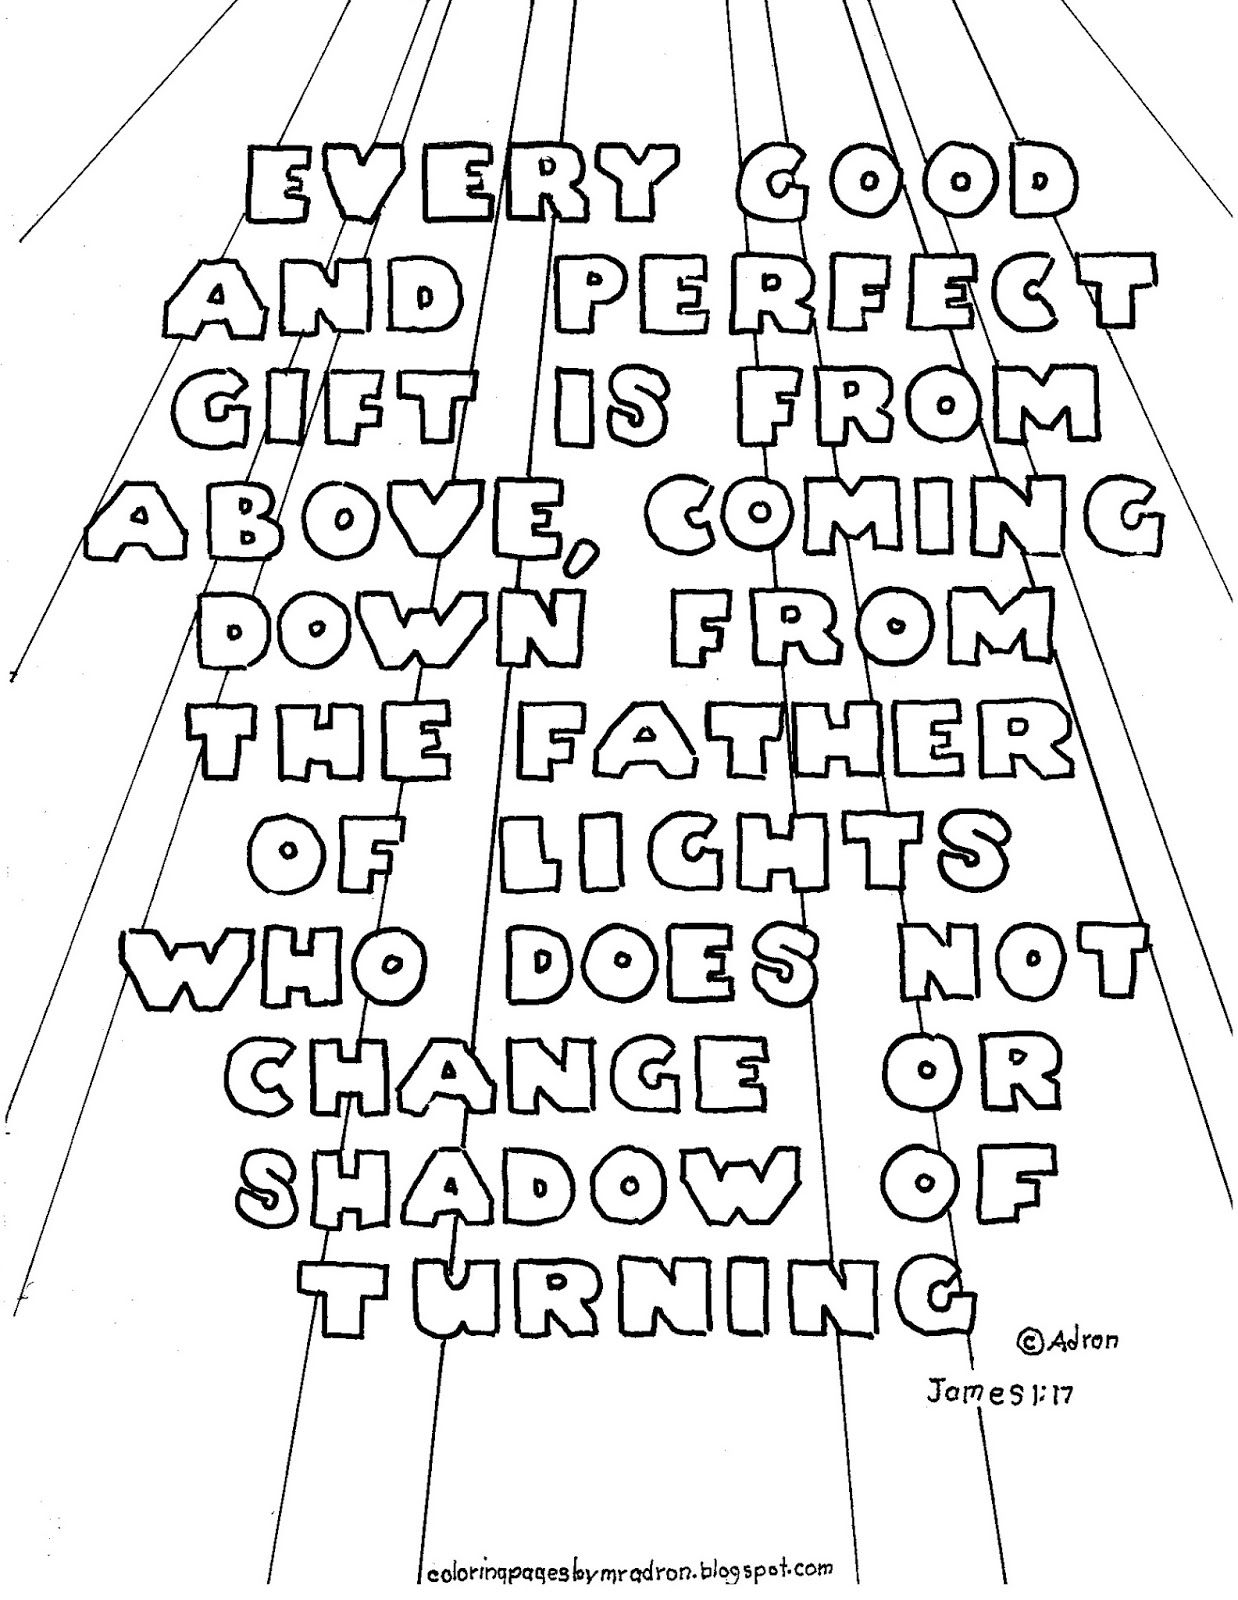 Coloring pages with bible verses - Coloring Pages For Kids By Mr Adron Printable Bible Verse Coloring Page James